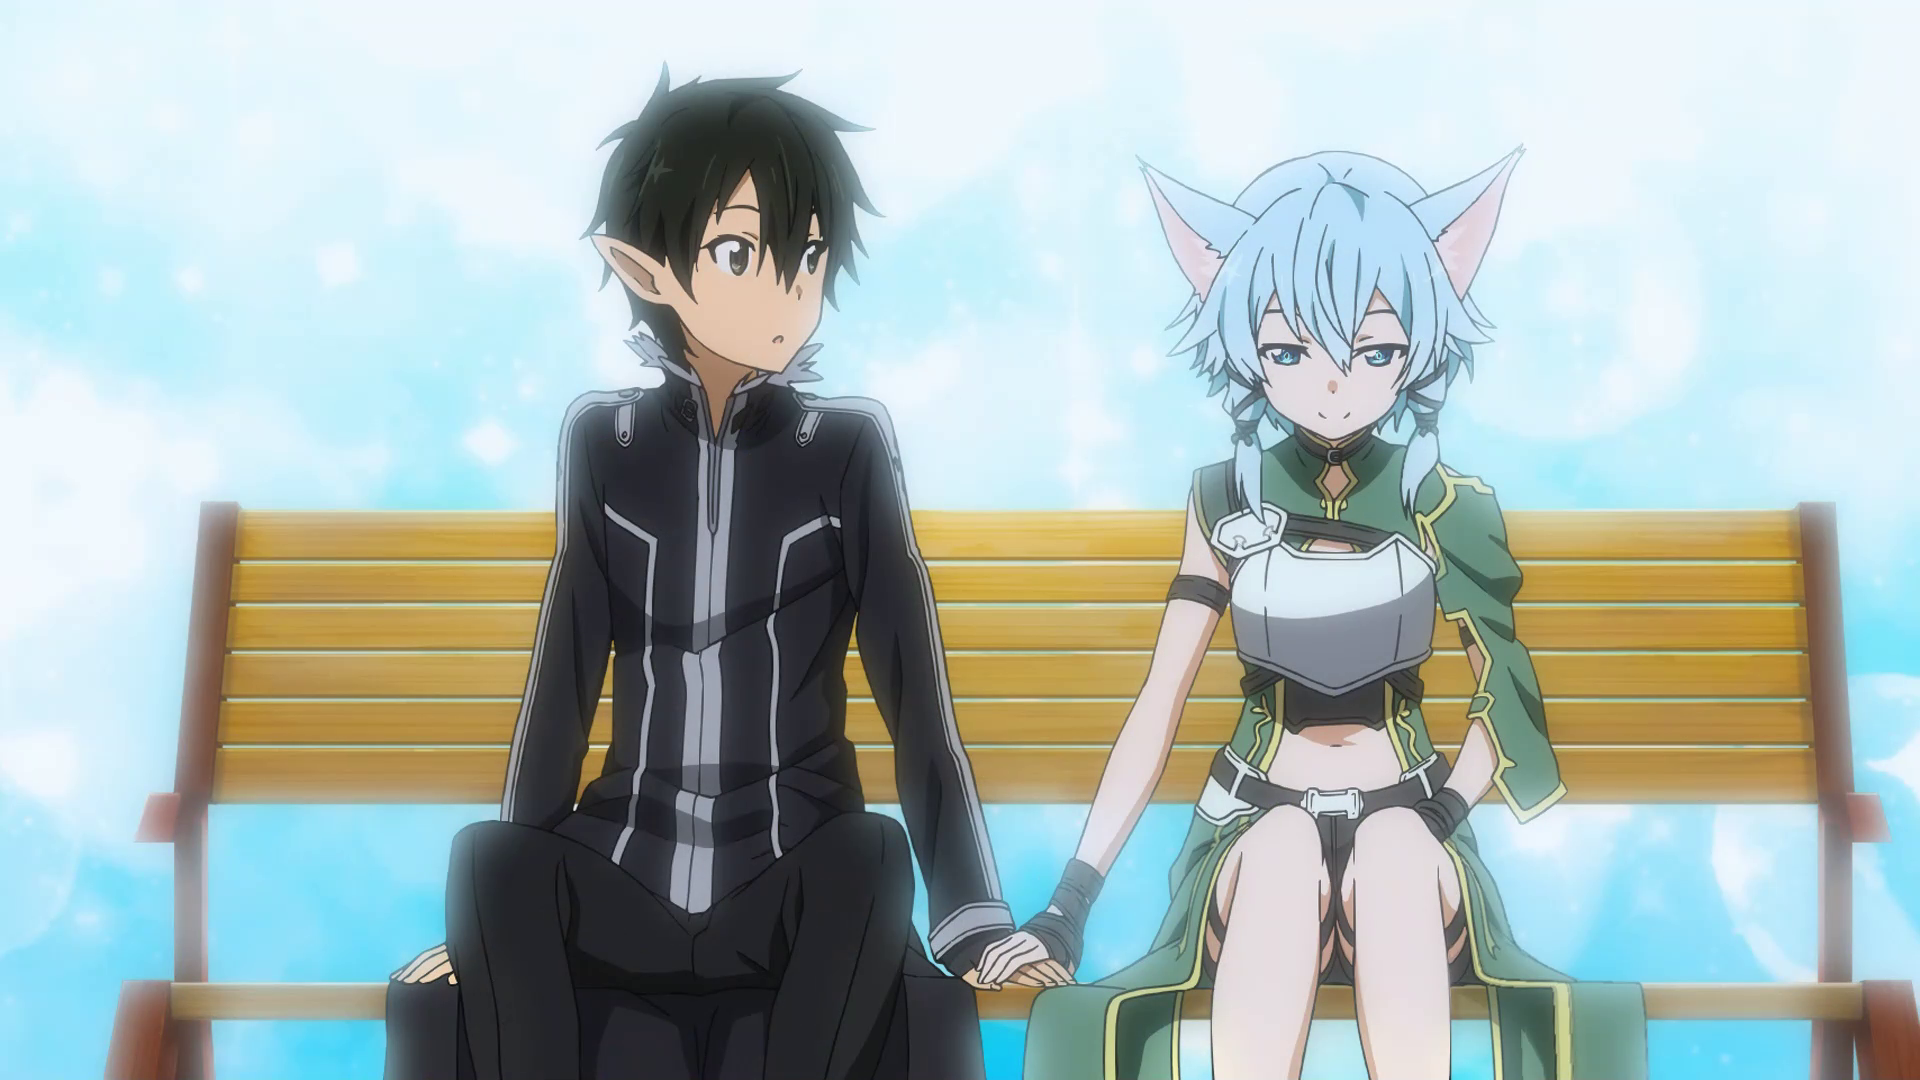 LS Sinon Holding Hands With Kirito On A Bench